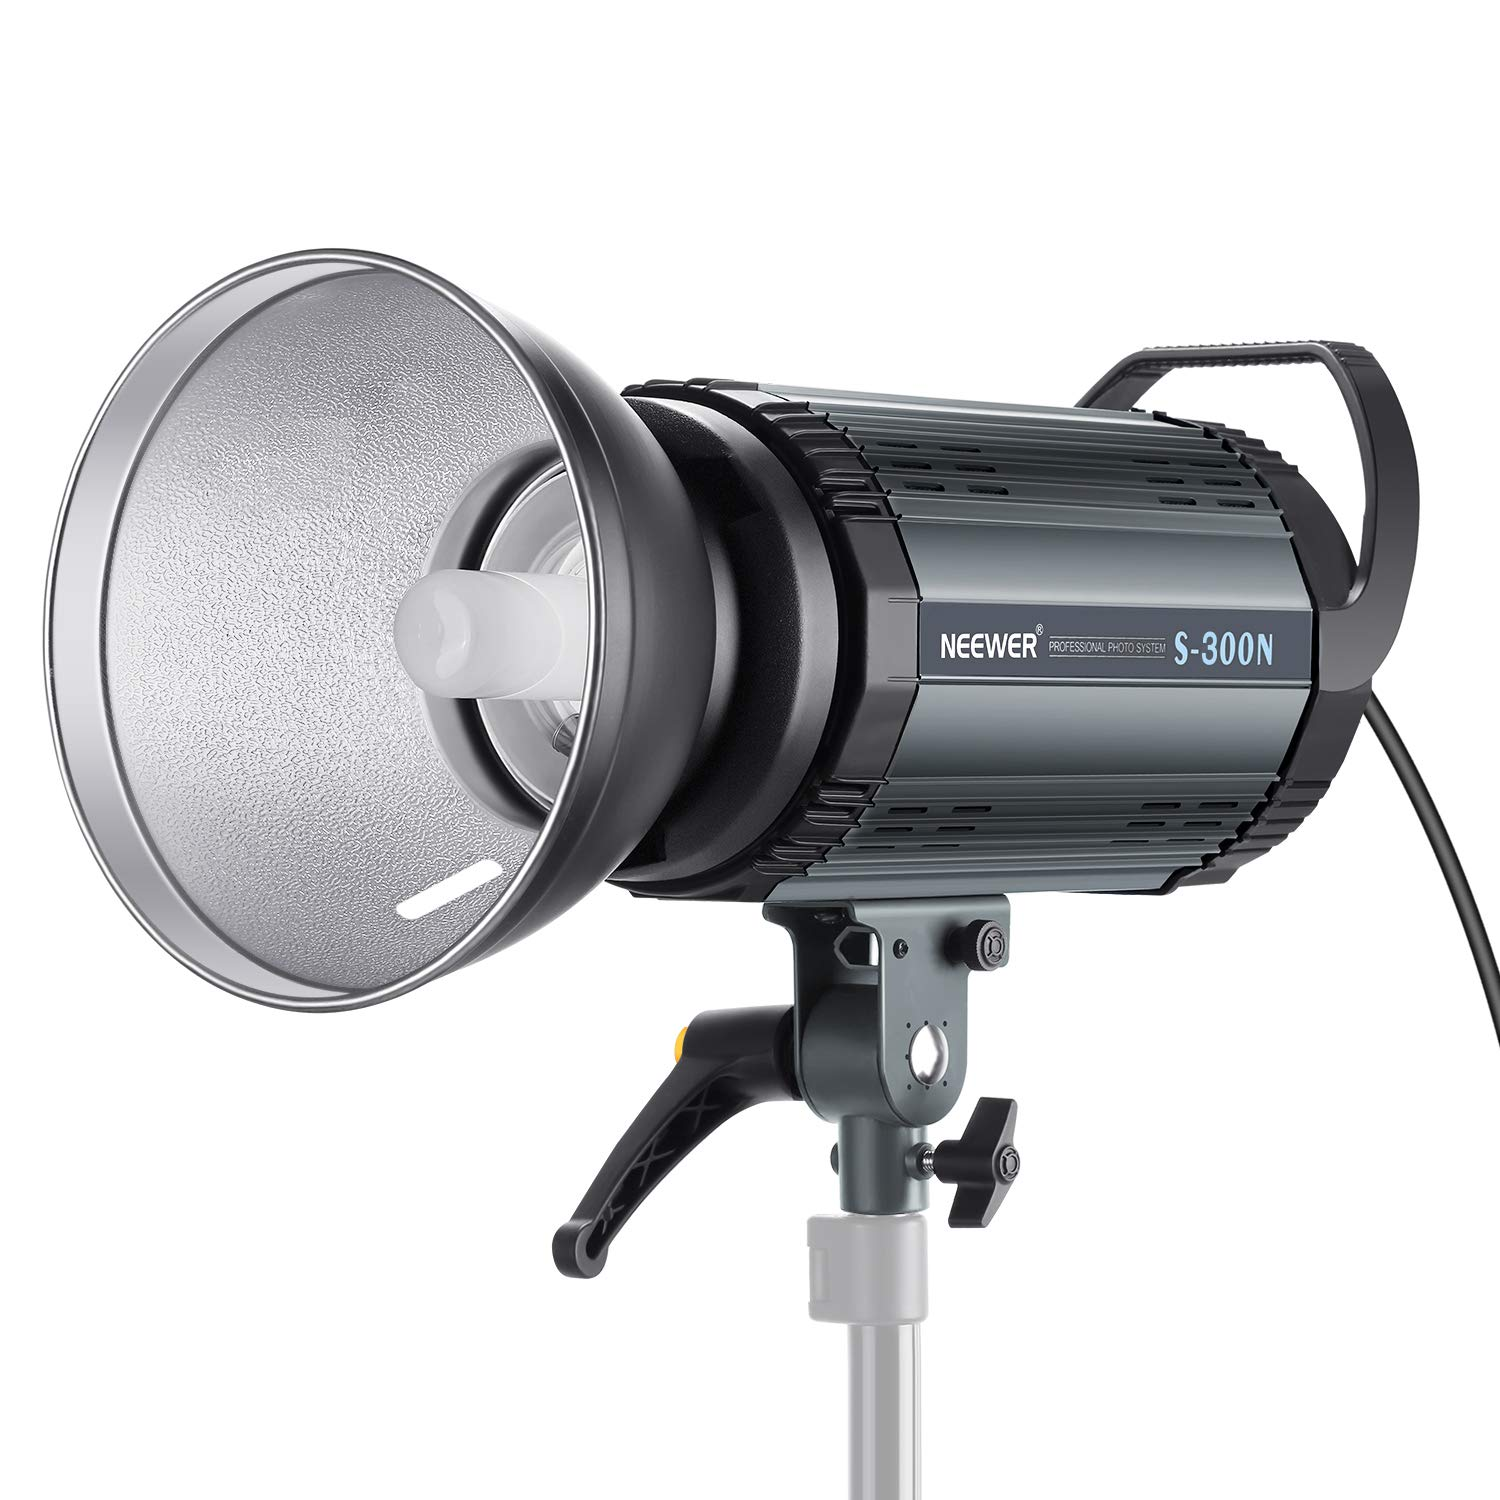 Neewer S300N Professional Studio Monolight Strobe Flash Light-300W 5600K with Modeling Lamp,Aluminium Alloy Professional Speedlite for Indoor Studio Location Model Photography and Portrait Photography by Neewer